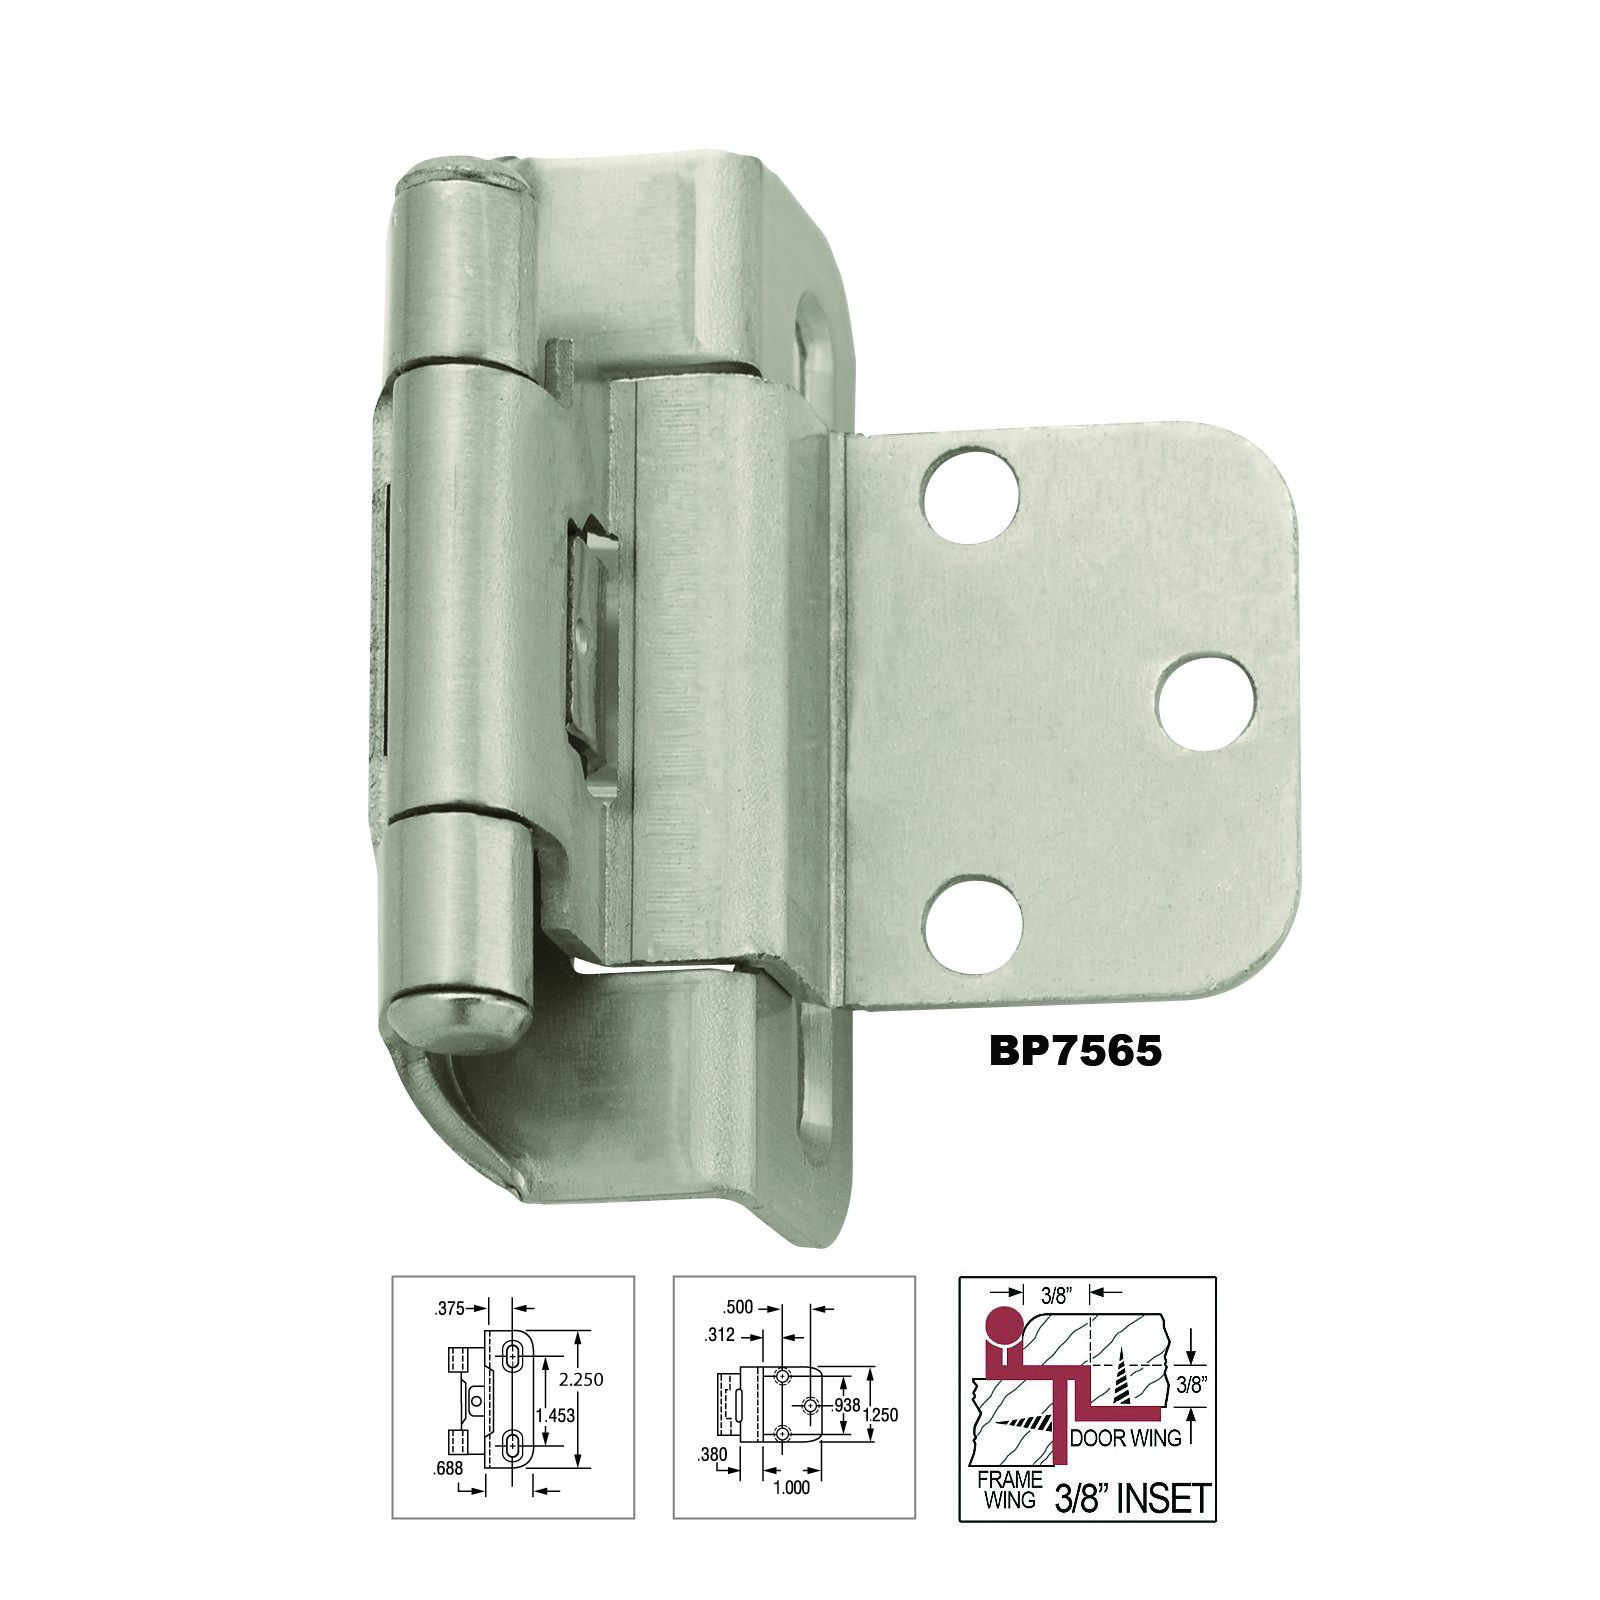 Amerock 3 8 Inch Overlay Partial Wrap Self Closing Hinge Satin Nickel Bpr7565g10 Inset Hinges Hinges For Cabinets Self Closing Hinges